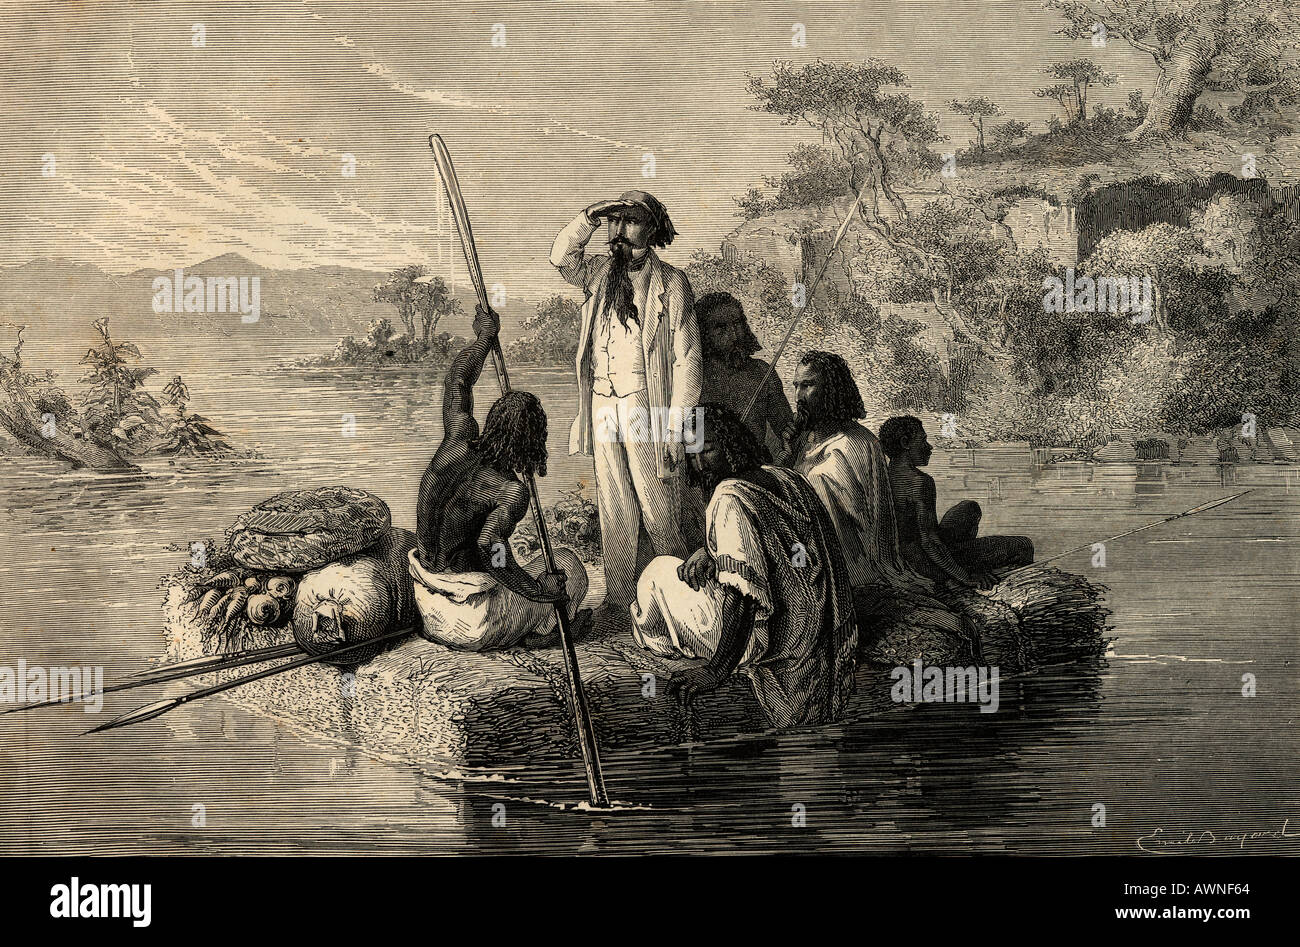 Journey in Abyssinia. 19th century print engraved by C Laplante from an illustration by Emile Bayard Stock Photo